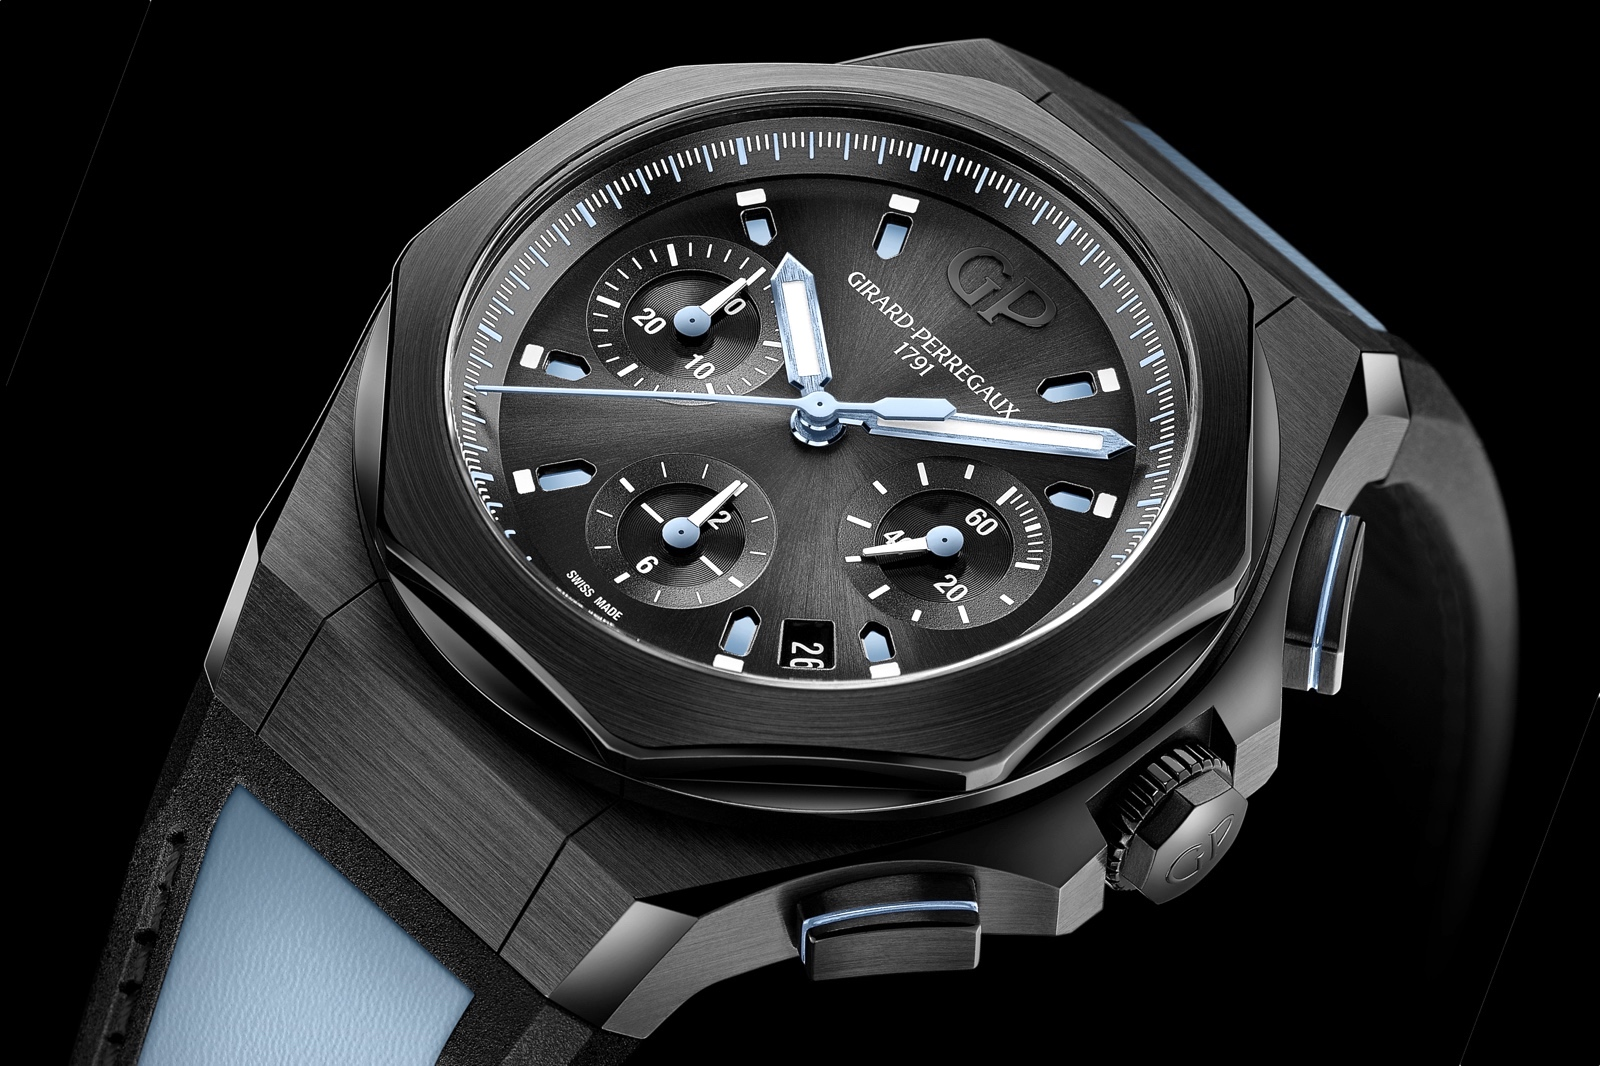 Laureato-Absolute-Chronograph-Only-Watch-2019